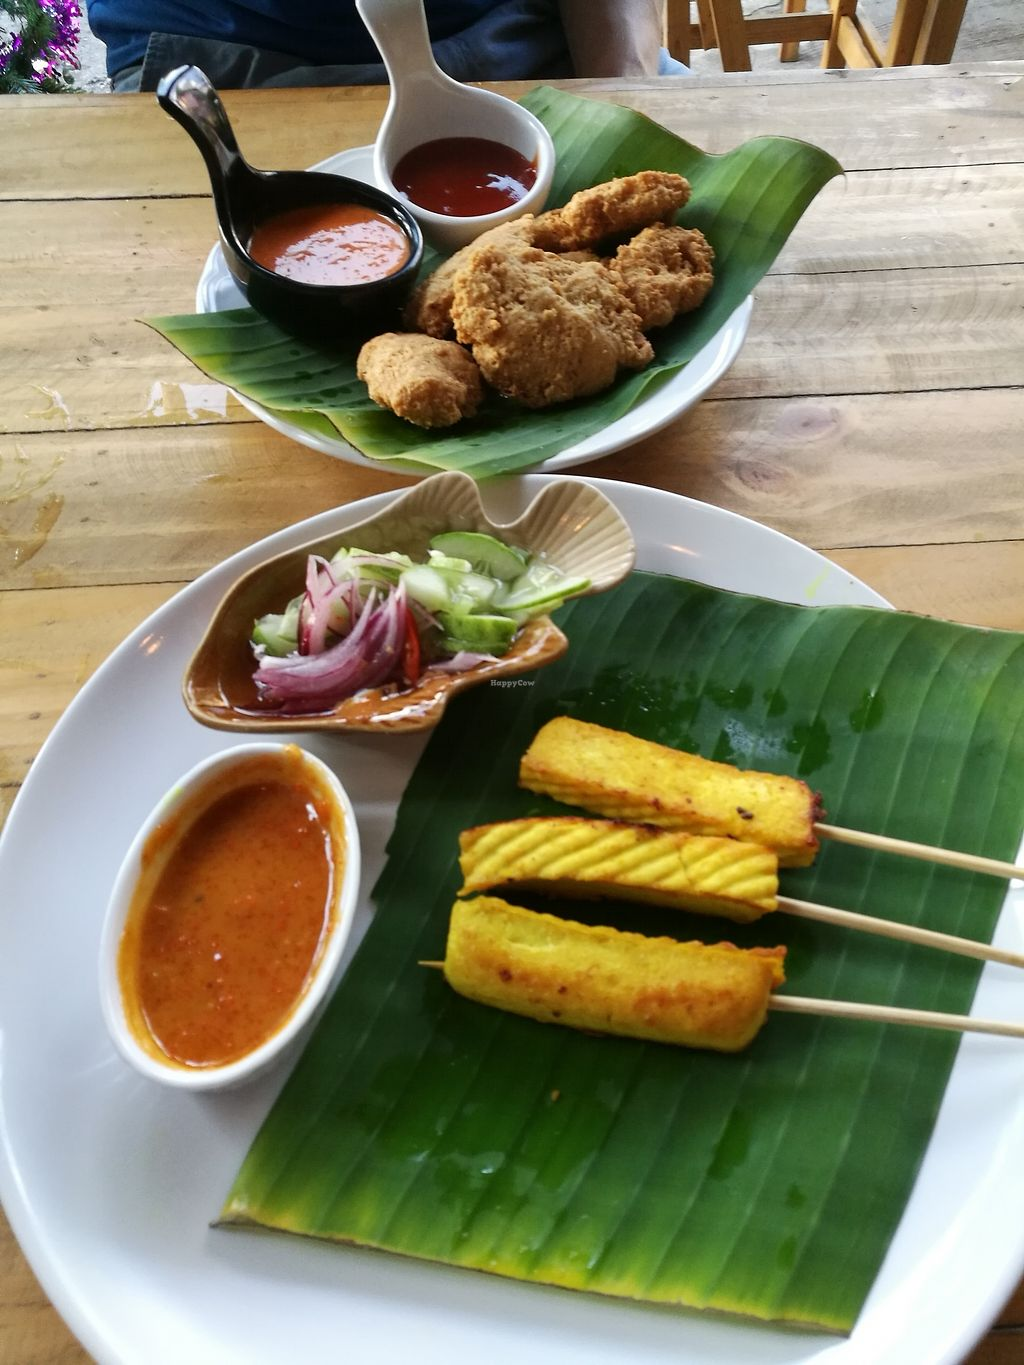 "Photo of Tofu  by <a href=""/members/profile/IlonaKotiranta"">IlonaKotiranta</a> <br/>Tofu nuggets and tofu satay <br/> December 12, 2017  - <a href='/contact/abuse/image/88087/334934'>Report</a>"